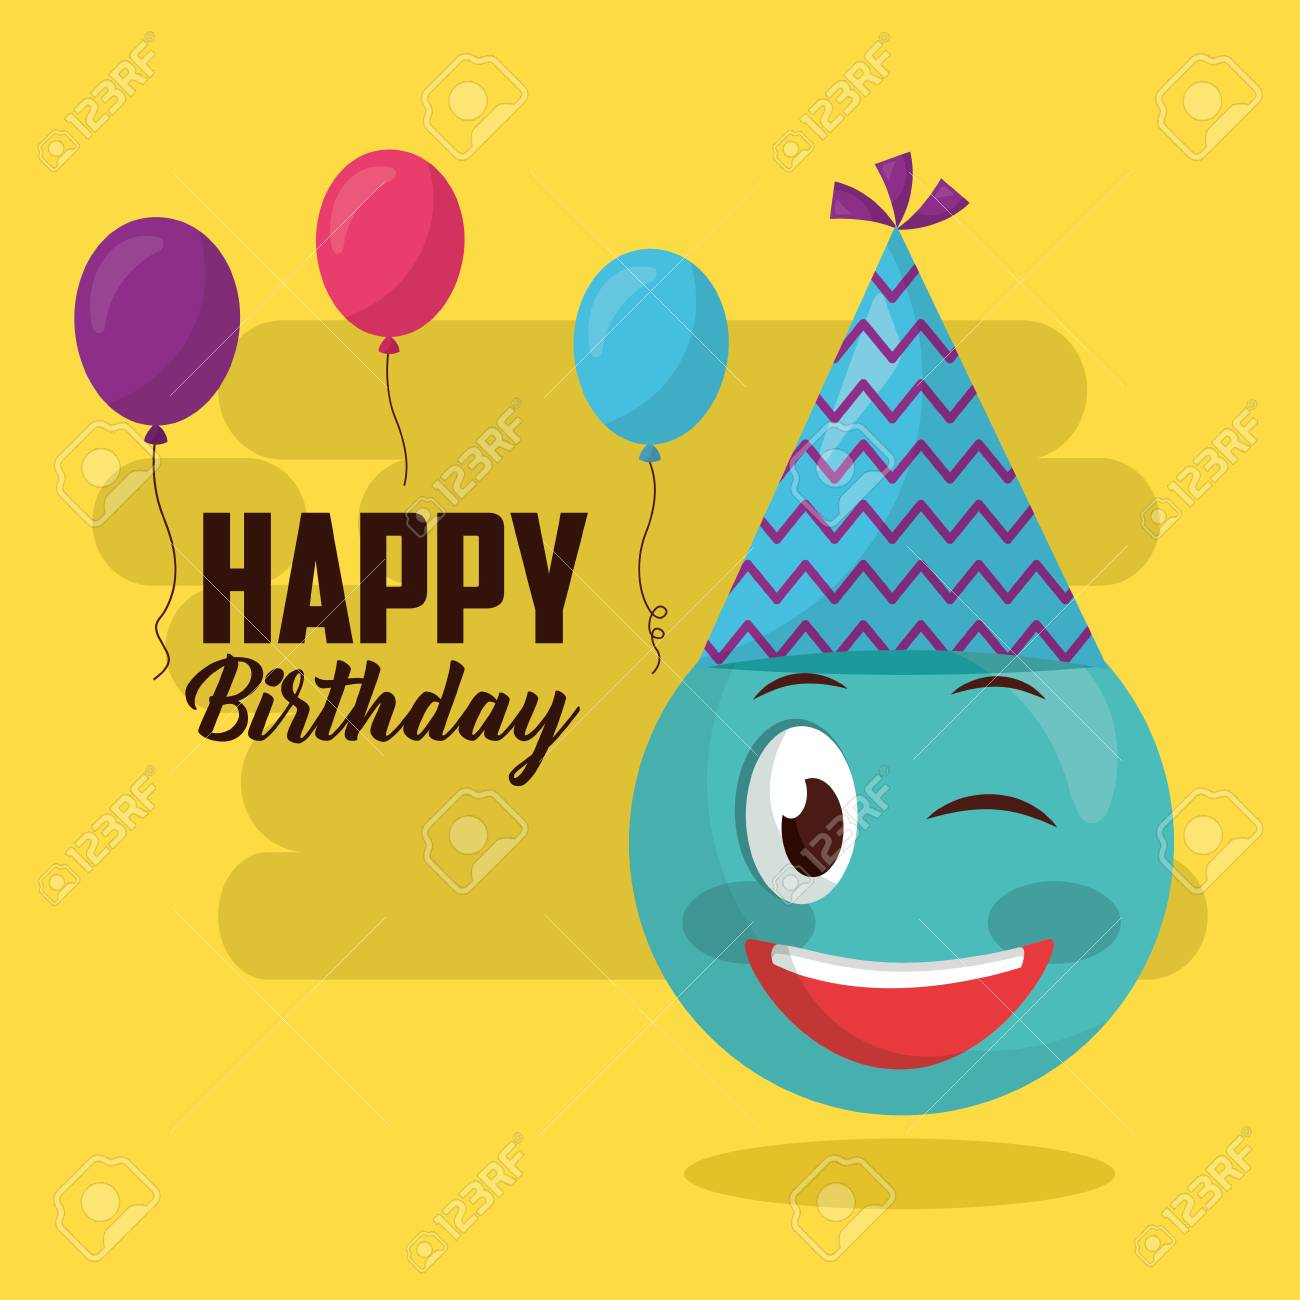 Happy Birthday Emoji Stinging The Eye Party Hat Balloons Sign Vector Illustration Stock